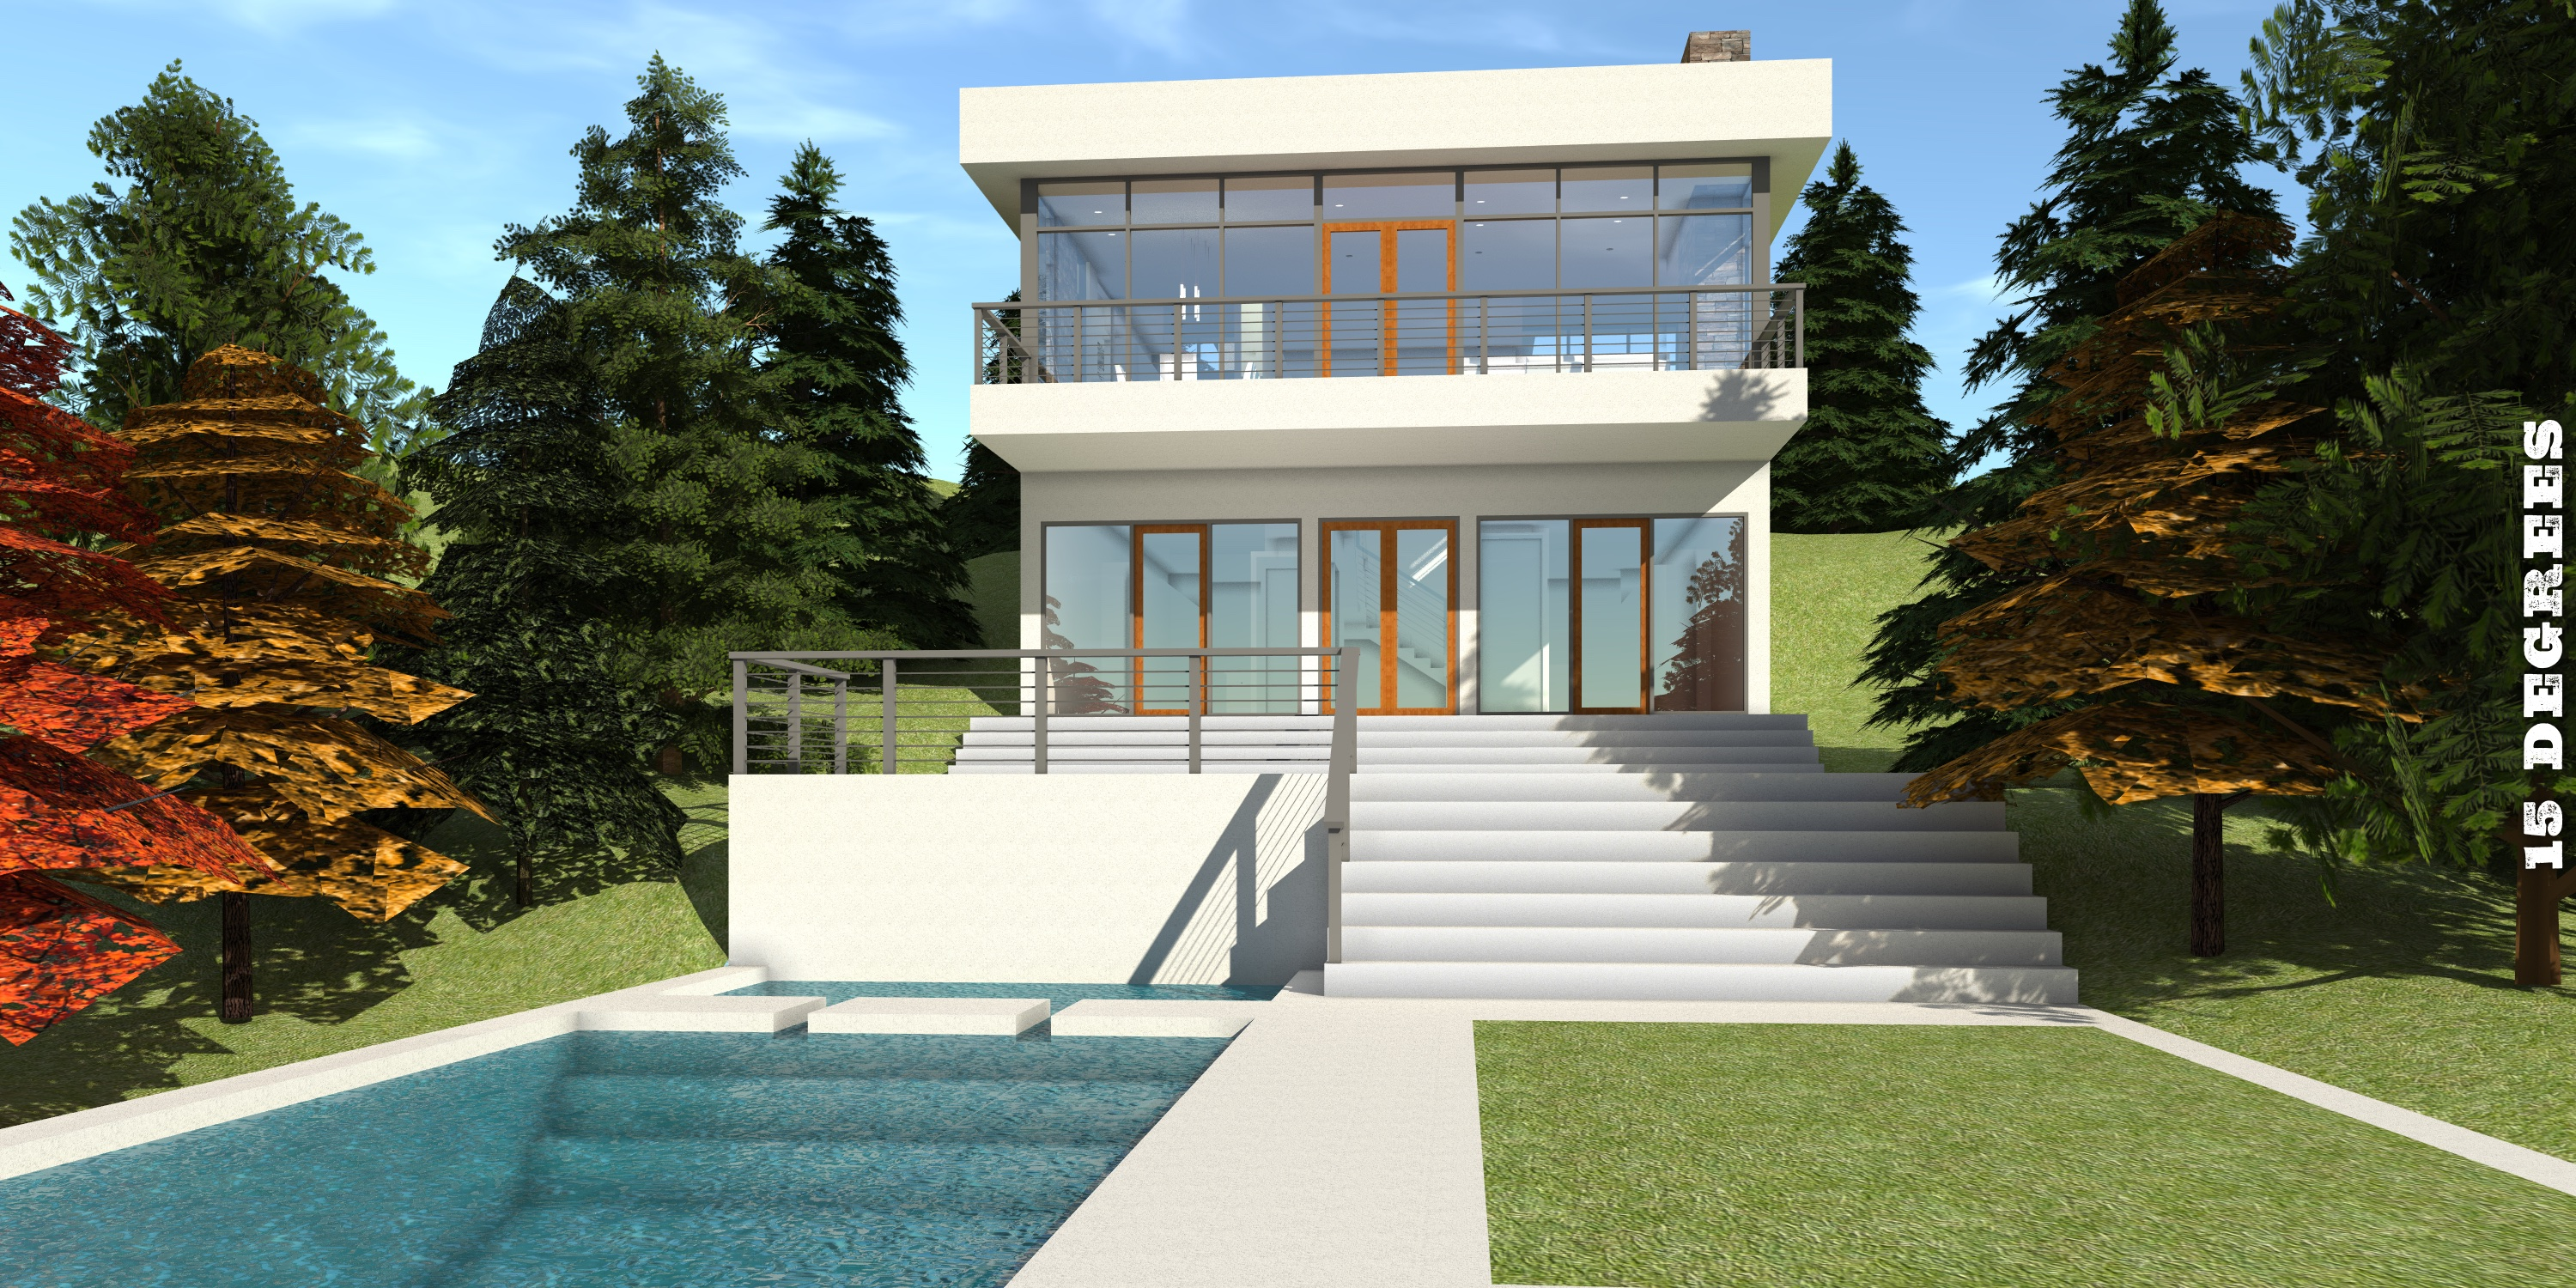 Modern Hillside Home. 2 Bedrooms. Ocoee by Tyree House Plans.